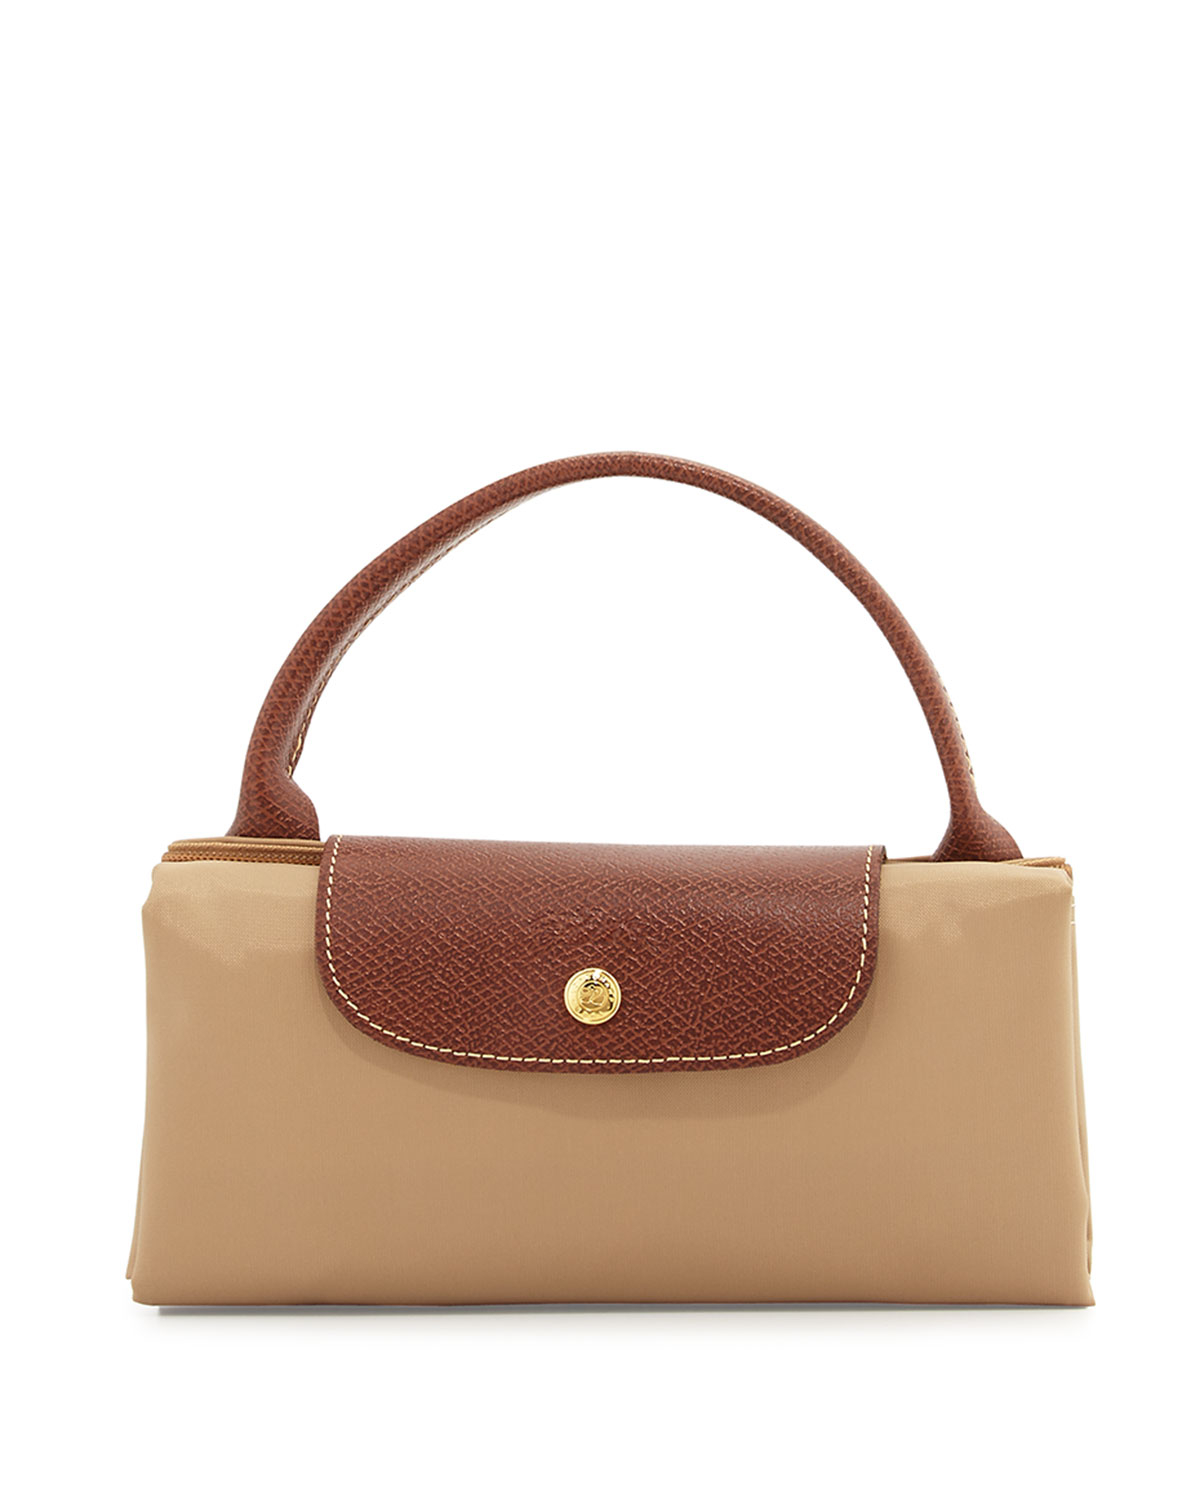 Longchamp Le Pliage Weekend Travel Bag in Brown | Lyst